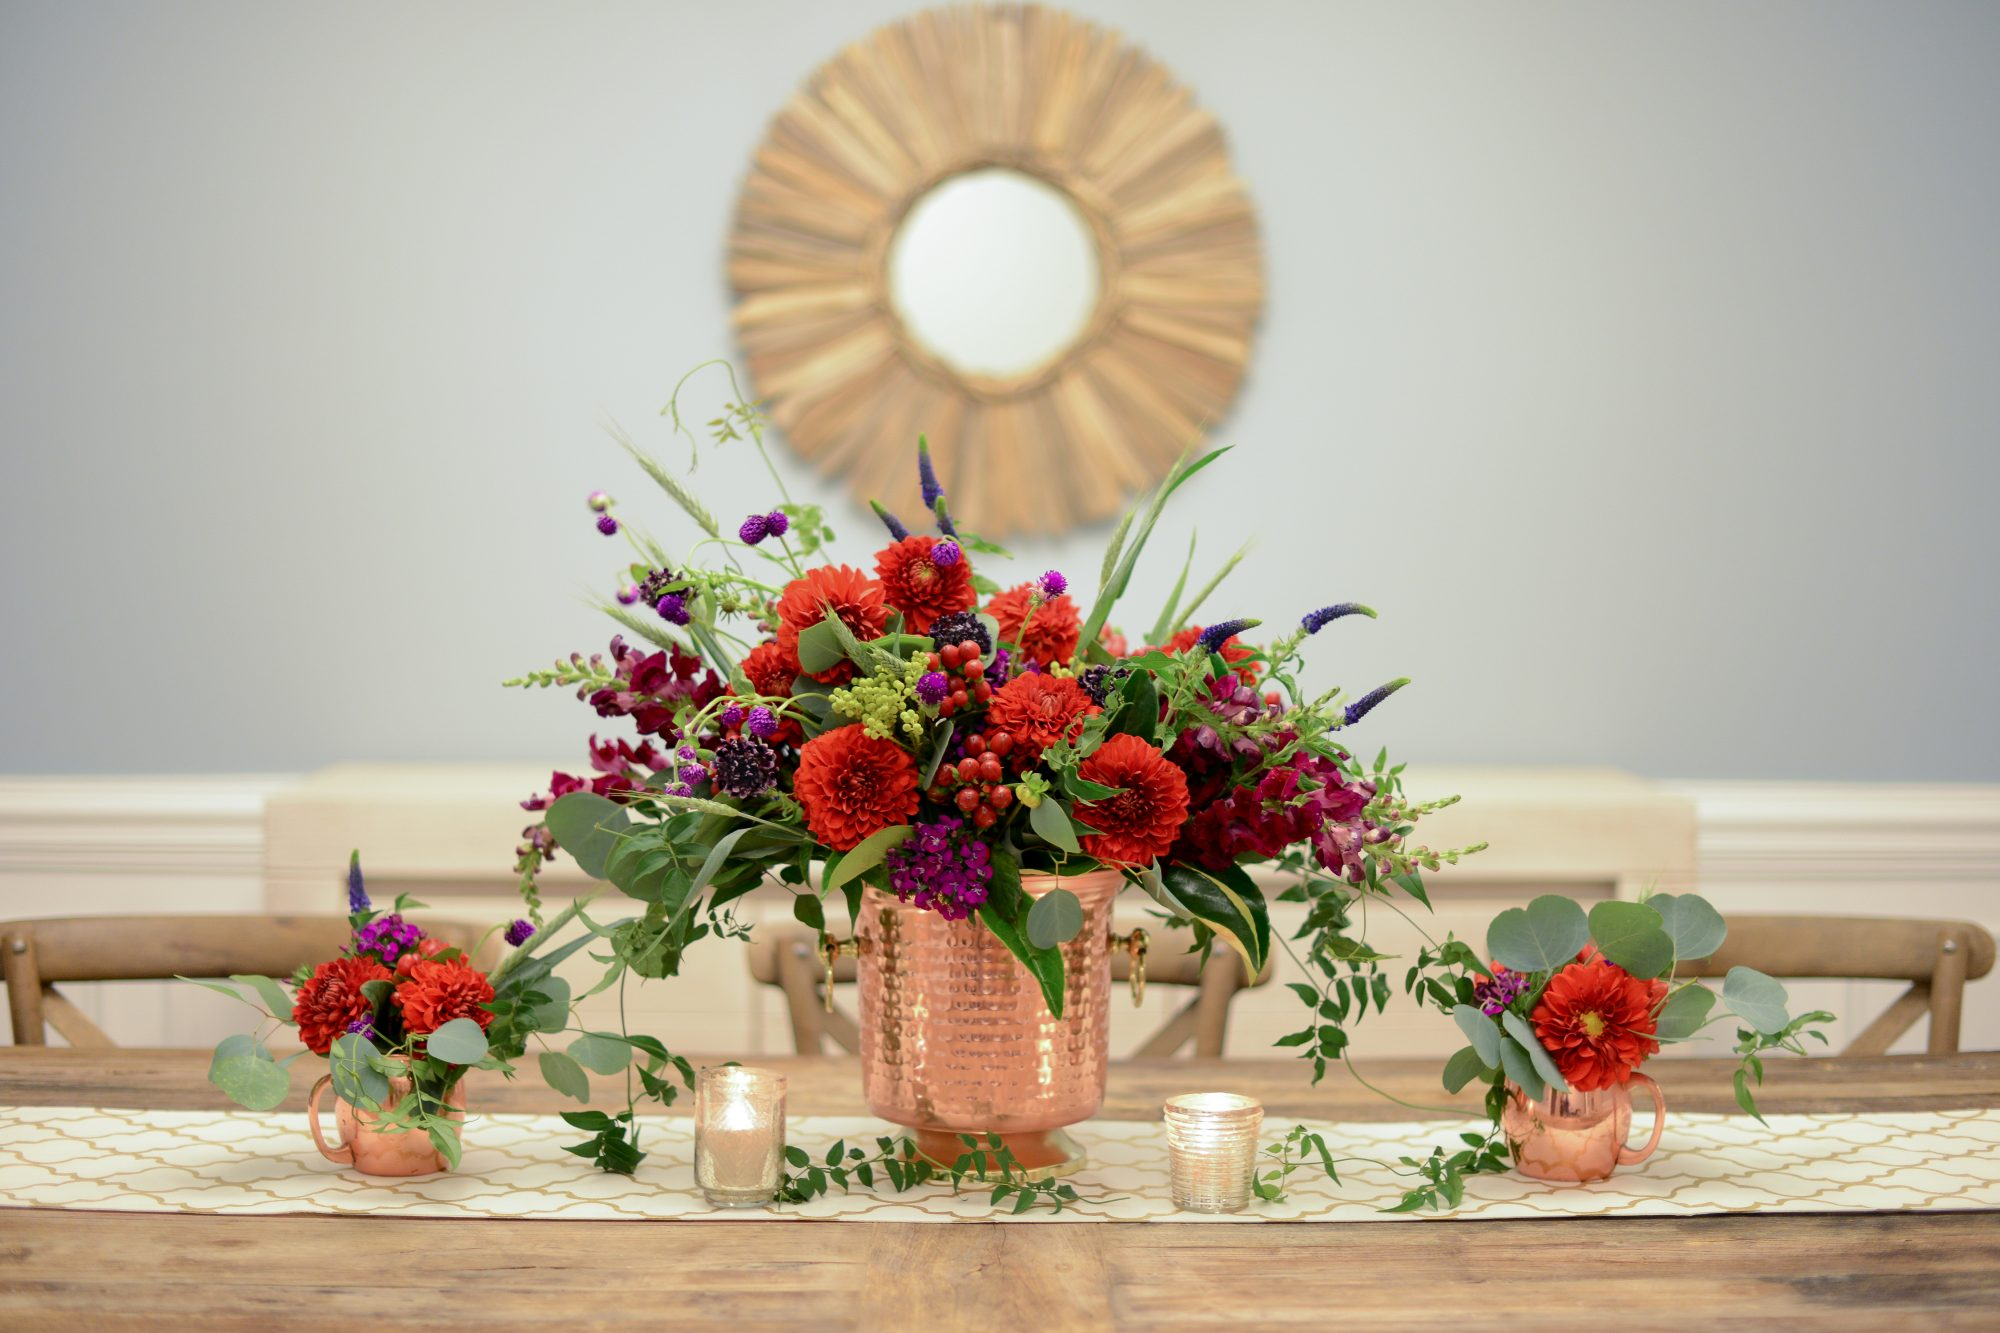 9 Thanksgiving Flower Arrangement Ideas From Experts For A Gorgeous Floral Centerpiece Real Simple